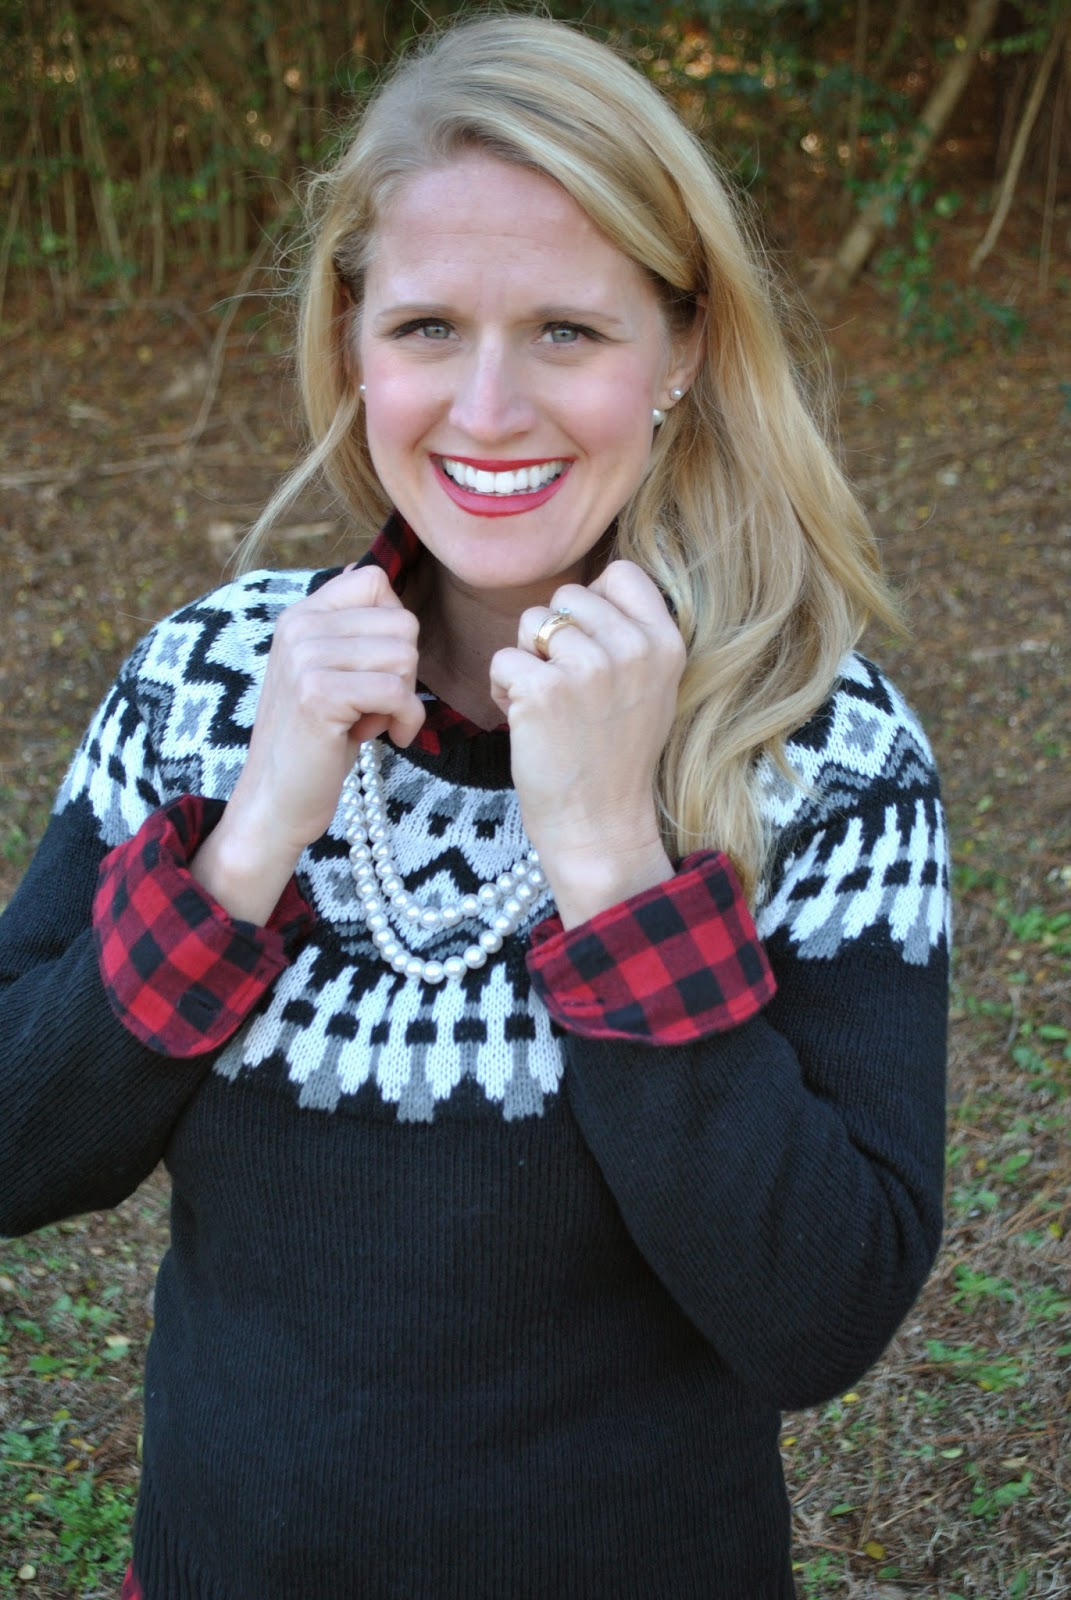 J Crew Herringbone Vest Buffalo Check Flannel Shirt Fair Isle Sweater~The Army Life of an Aviators Wife